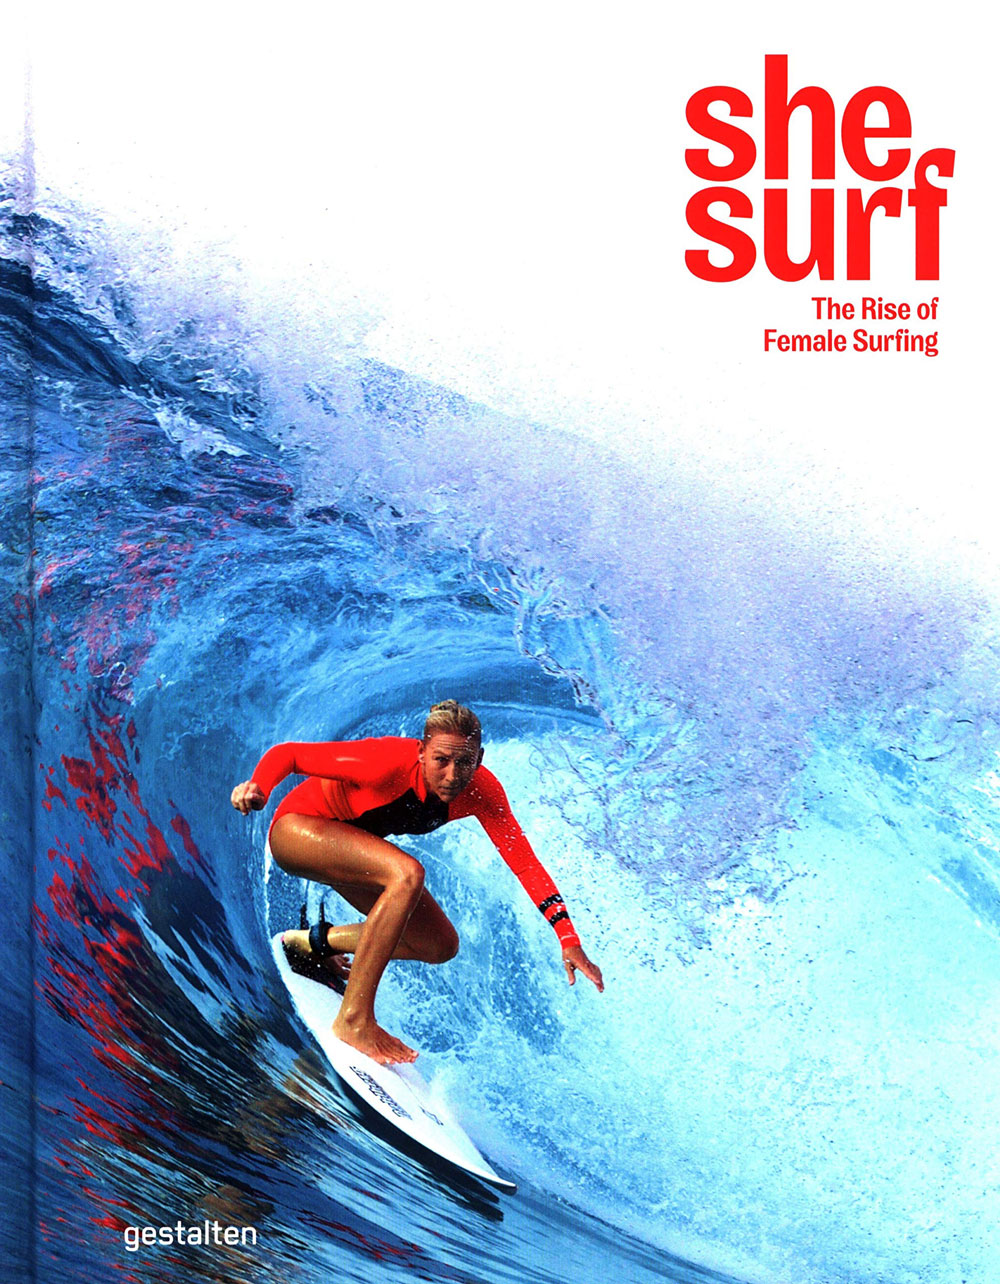 She Surf - The Rise of Female Surfing - Book